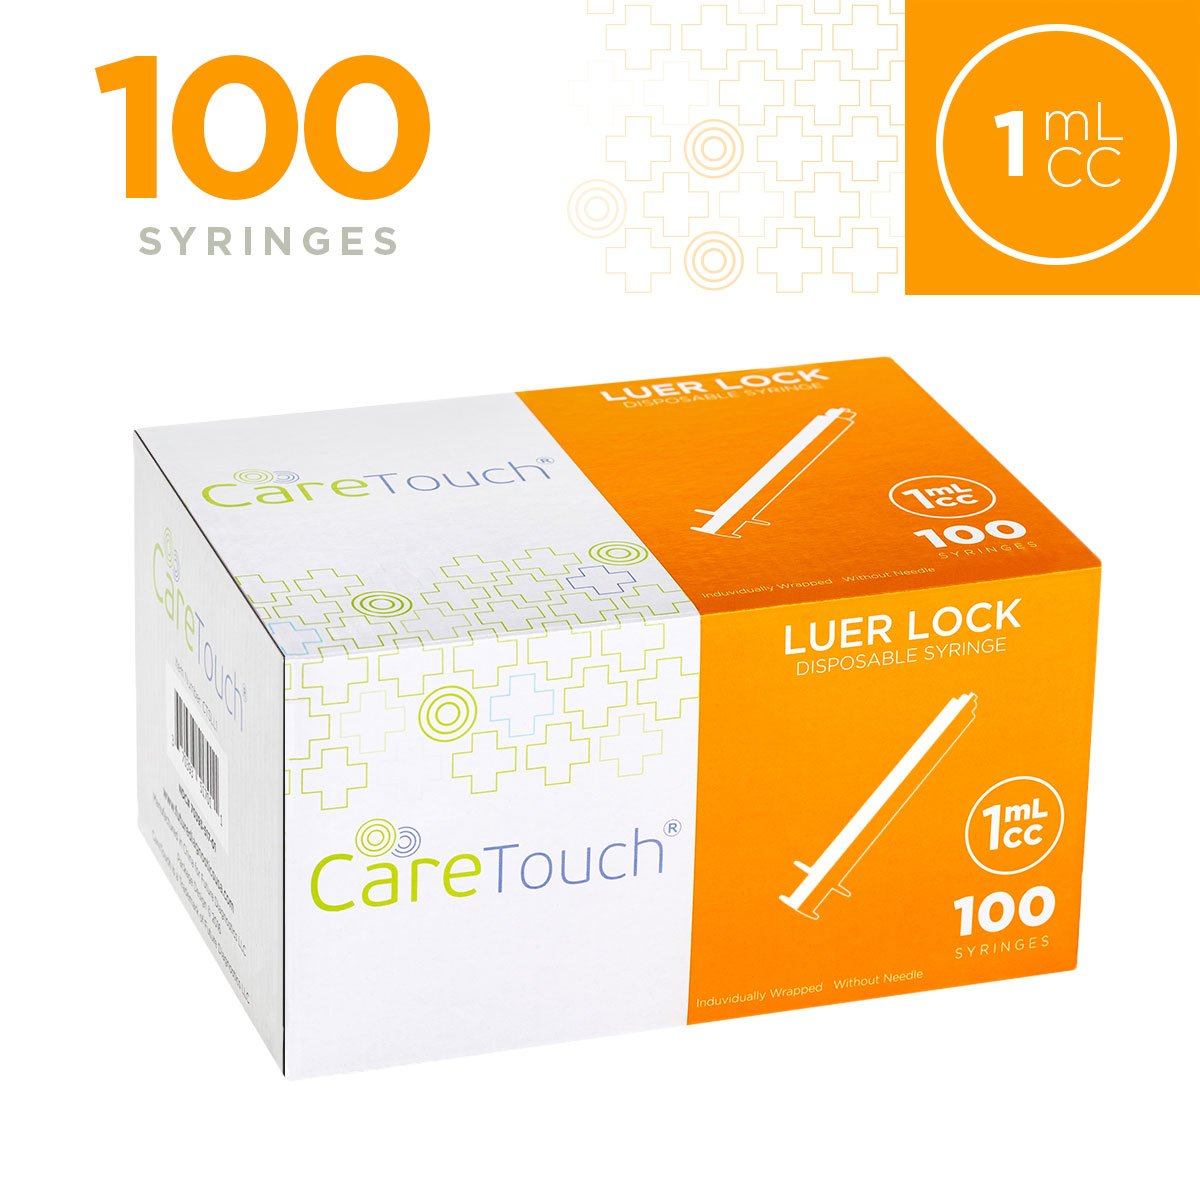 1ml Syringe Only with Luer Lock Tip - 100 Syringes by Care Touch (No Needle)